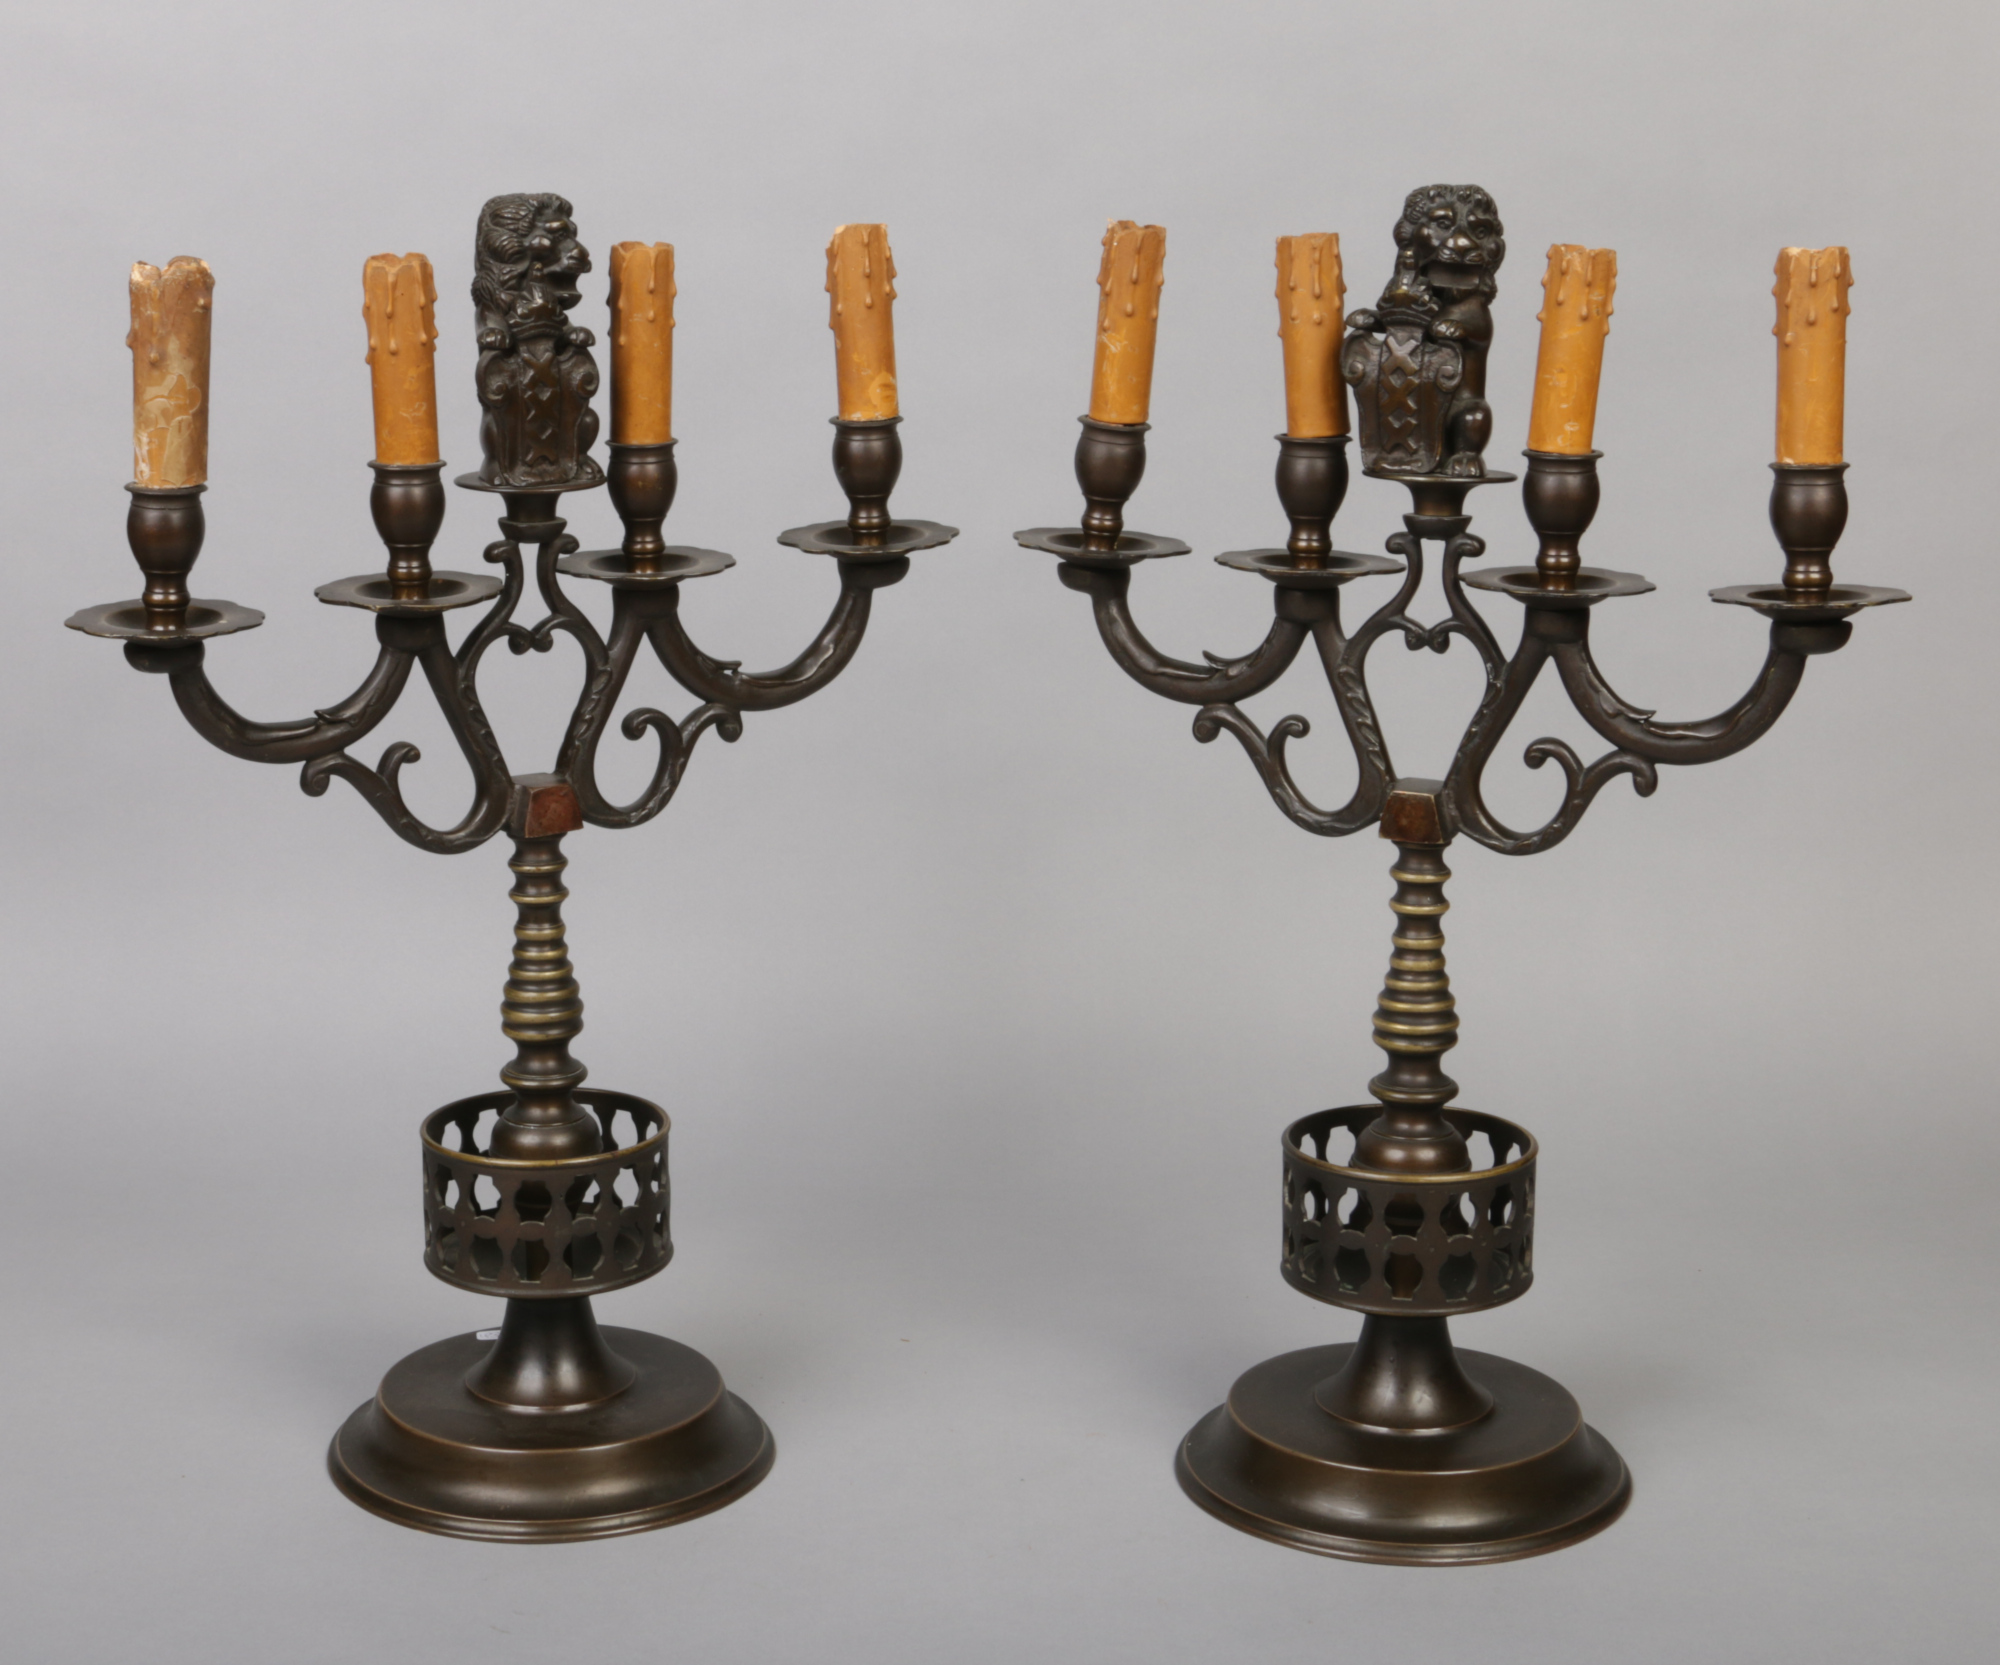 Lot 244 - A pair of Dutch 18th century style bronze armorial four branch candelabra / tablelamps. Each with